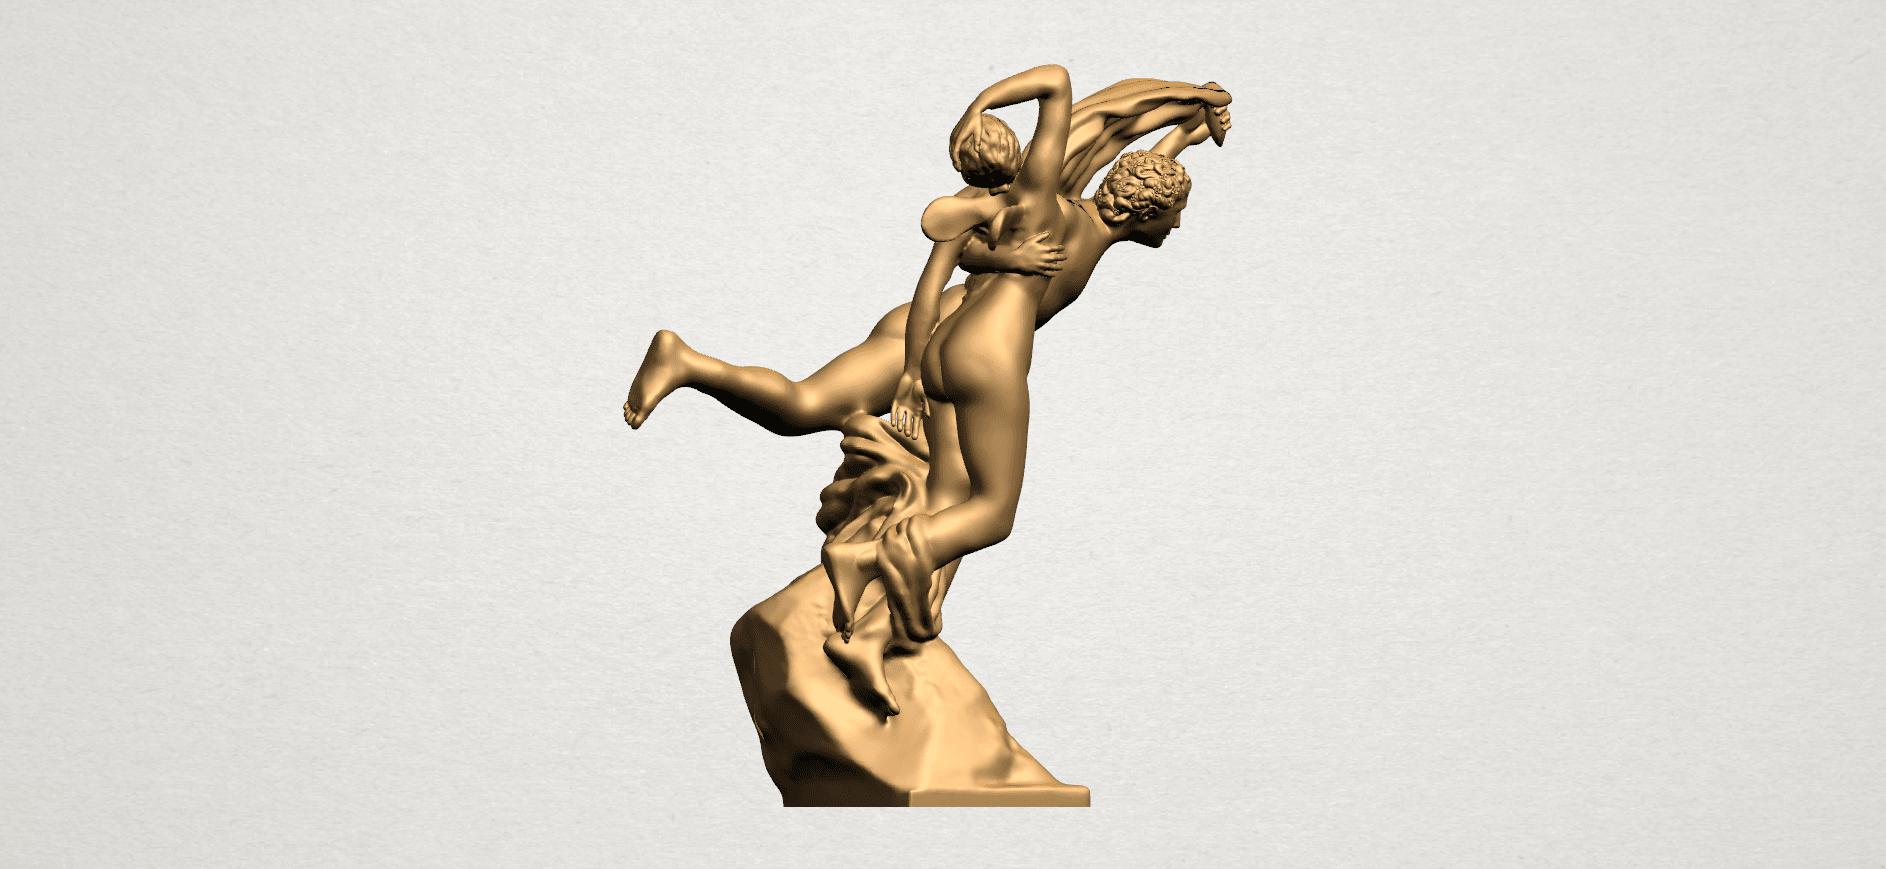 Cupid and Psyche - A06.png Download free STL file Cupid and Psyche • 3D printing template, GeorgesNikkei